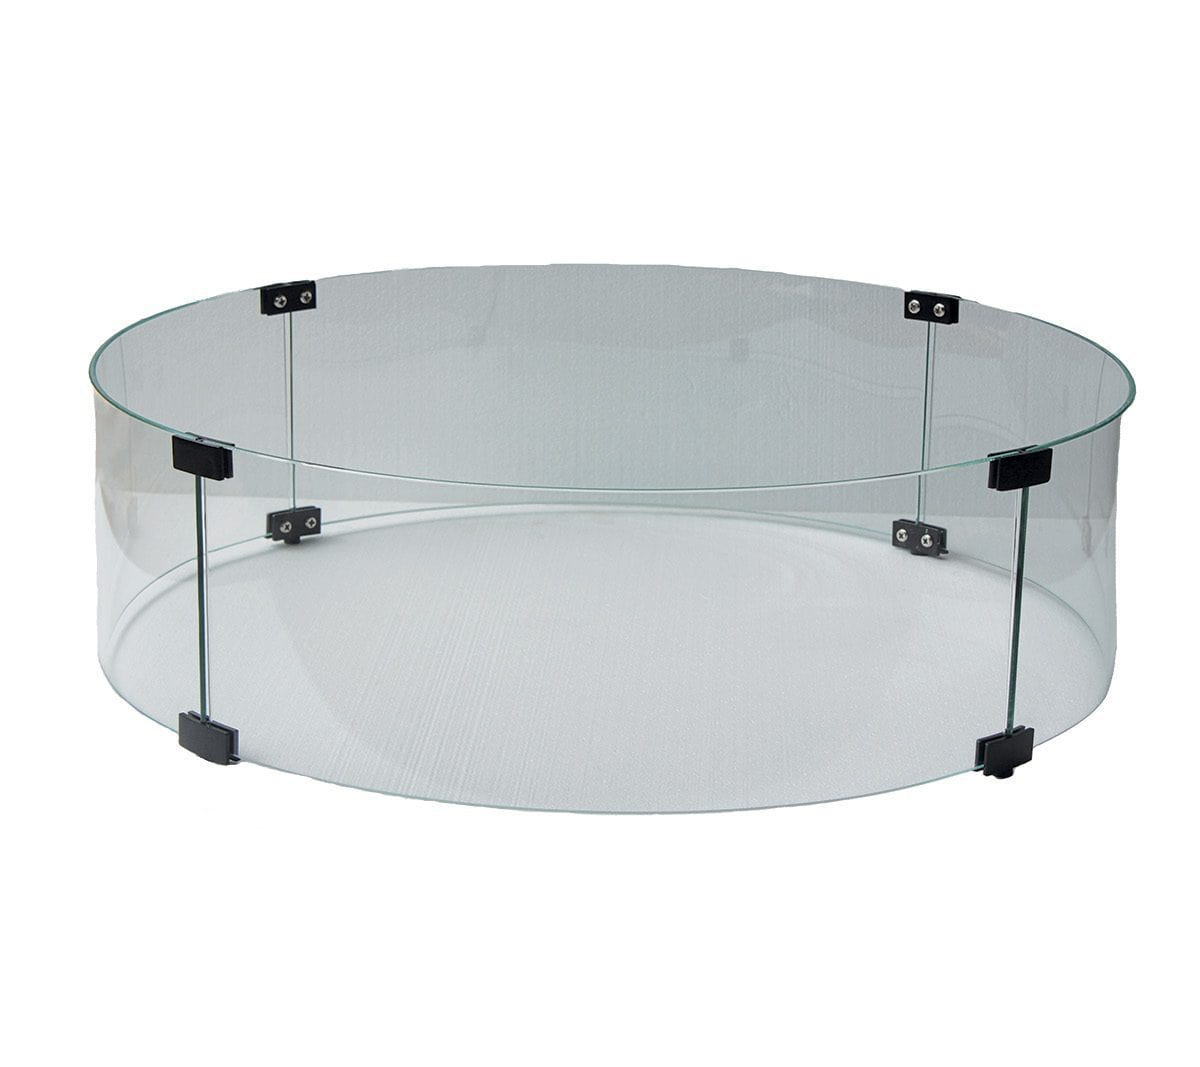 Ratana Fire Accessories Round Fire Pit Glass Windshield